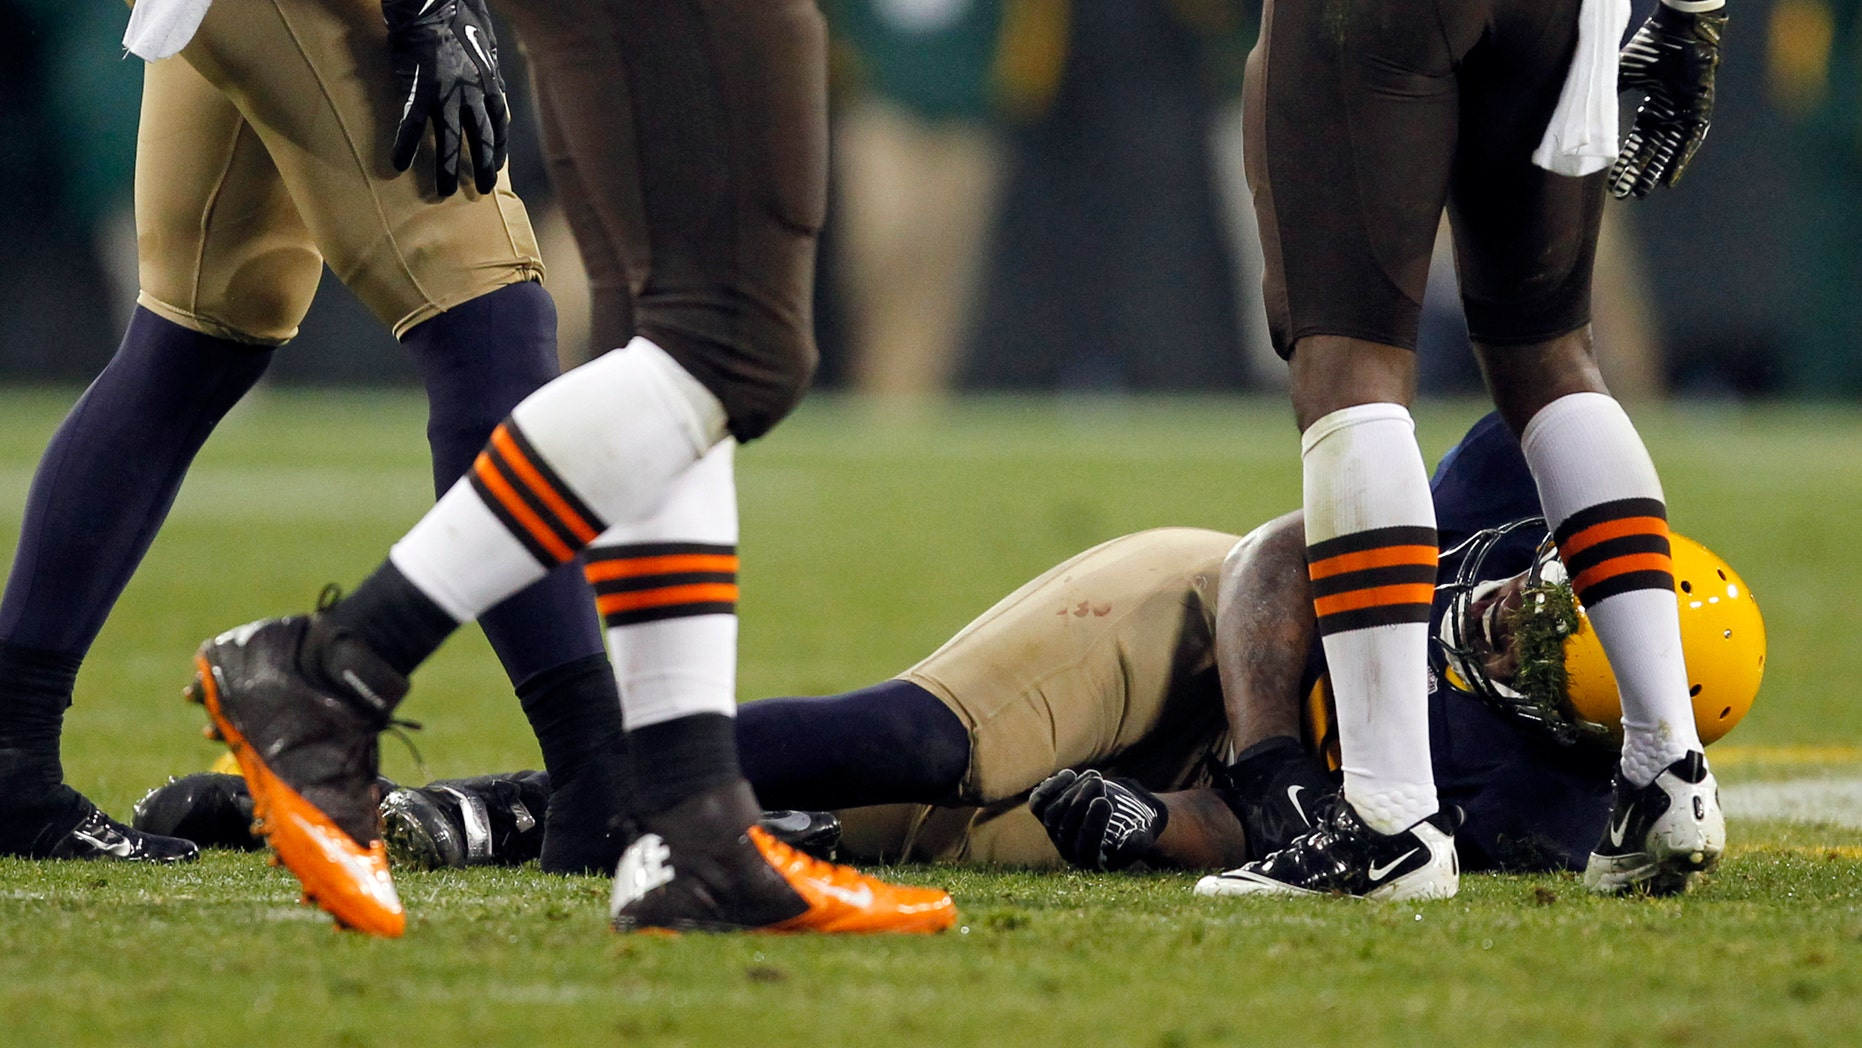 Green Bay Packers' Jermichael Finley lays on the field after being injured during the second half of an NFL football game against the Cleveland Browns Sunday, Oct. 20, 2013, in Green Bay, Wis. Finley left the game on a stretcher. (AP Photo/Mike Roemer)